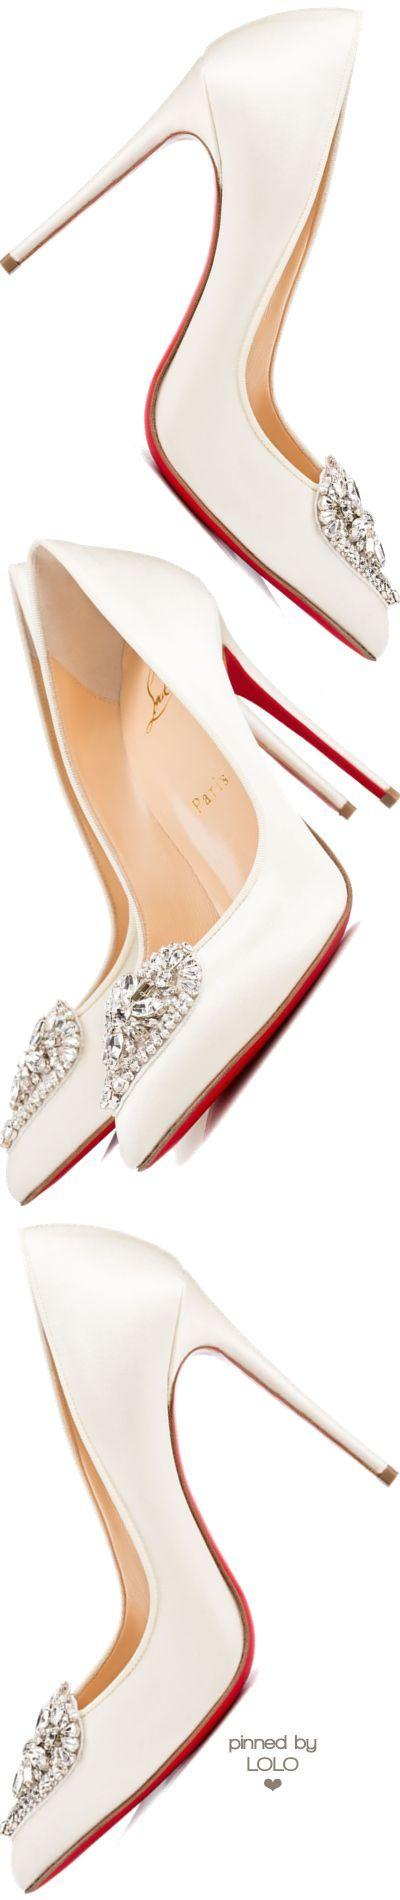 Wedding - Woman Shoes